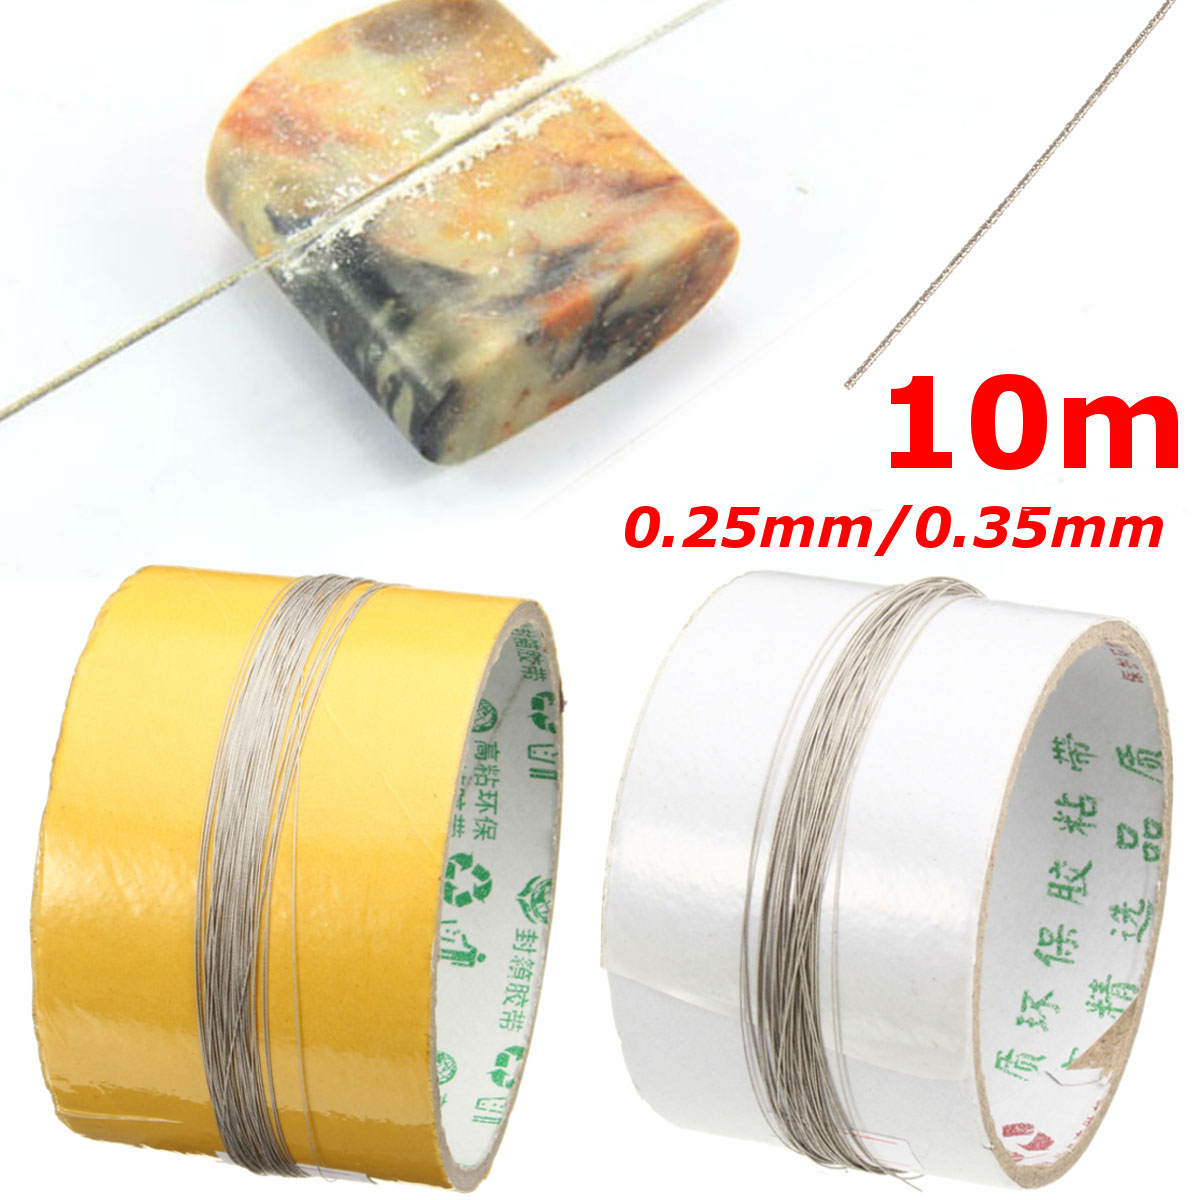 10m Length DIY Coping Cutting Saw Blades 0.35mm Diamond Cutting Wire Metal Wire Diamond Emery Jade Metal Stone Glass-in Saw Blades from Tools